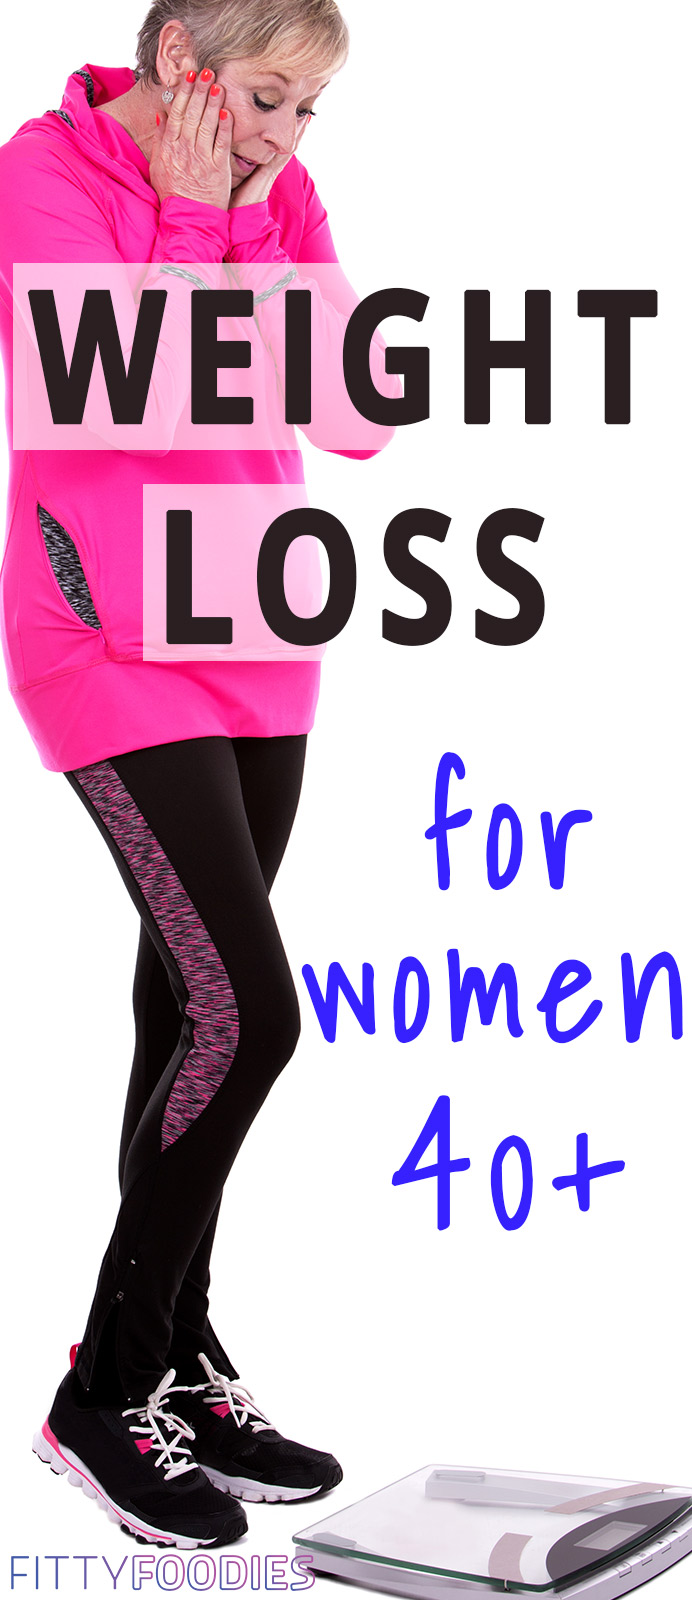 Weight Loss For Women Over 40 | How To Lose Weight For Women Over 40 | Women Over 40 Weighloss